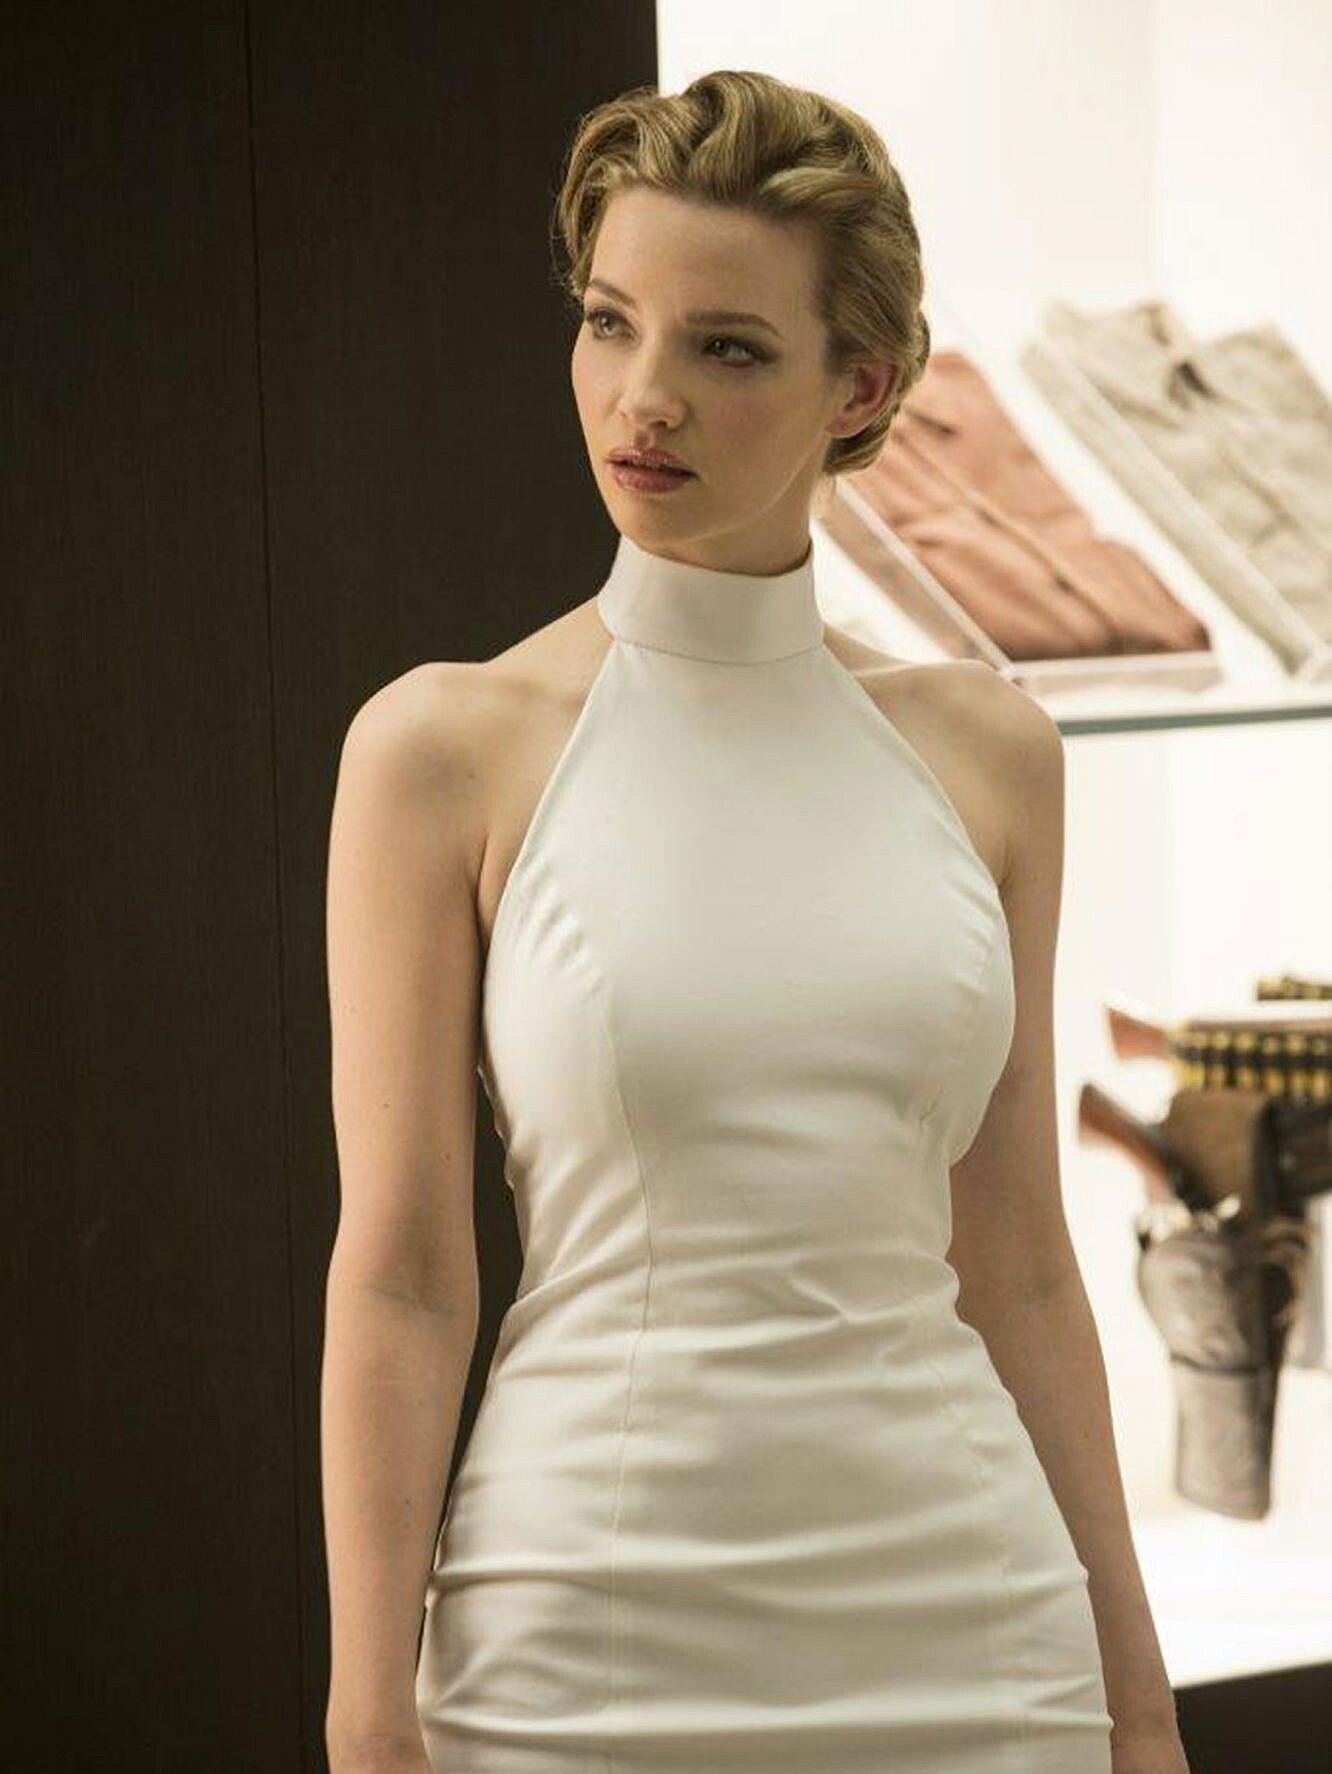 The 35-year old daughter of father (?) and mother(?) Talulah Riley in 2020 photo. Talulah Riley earned a  million dollar salary - leaving the net worth at  million in 2020